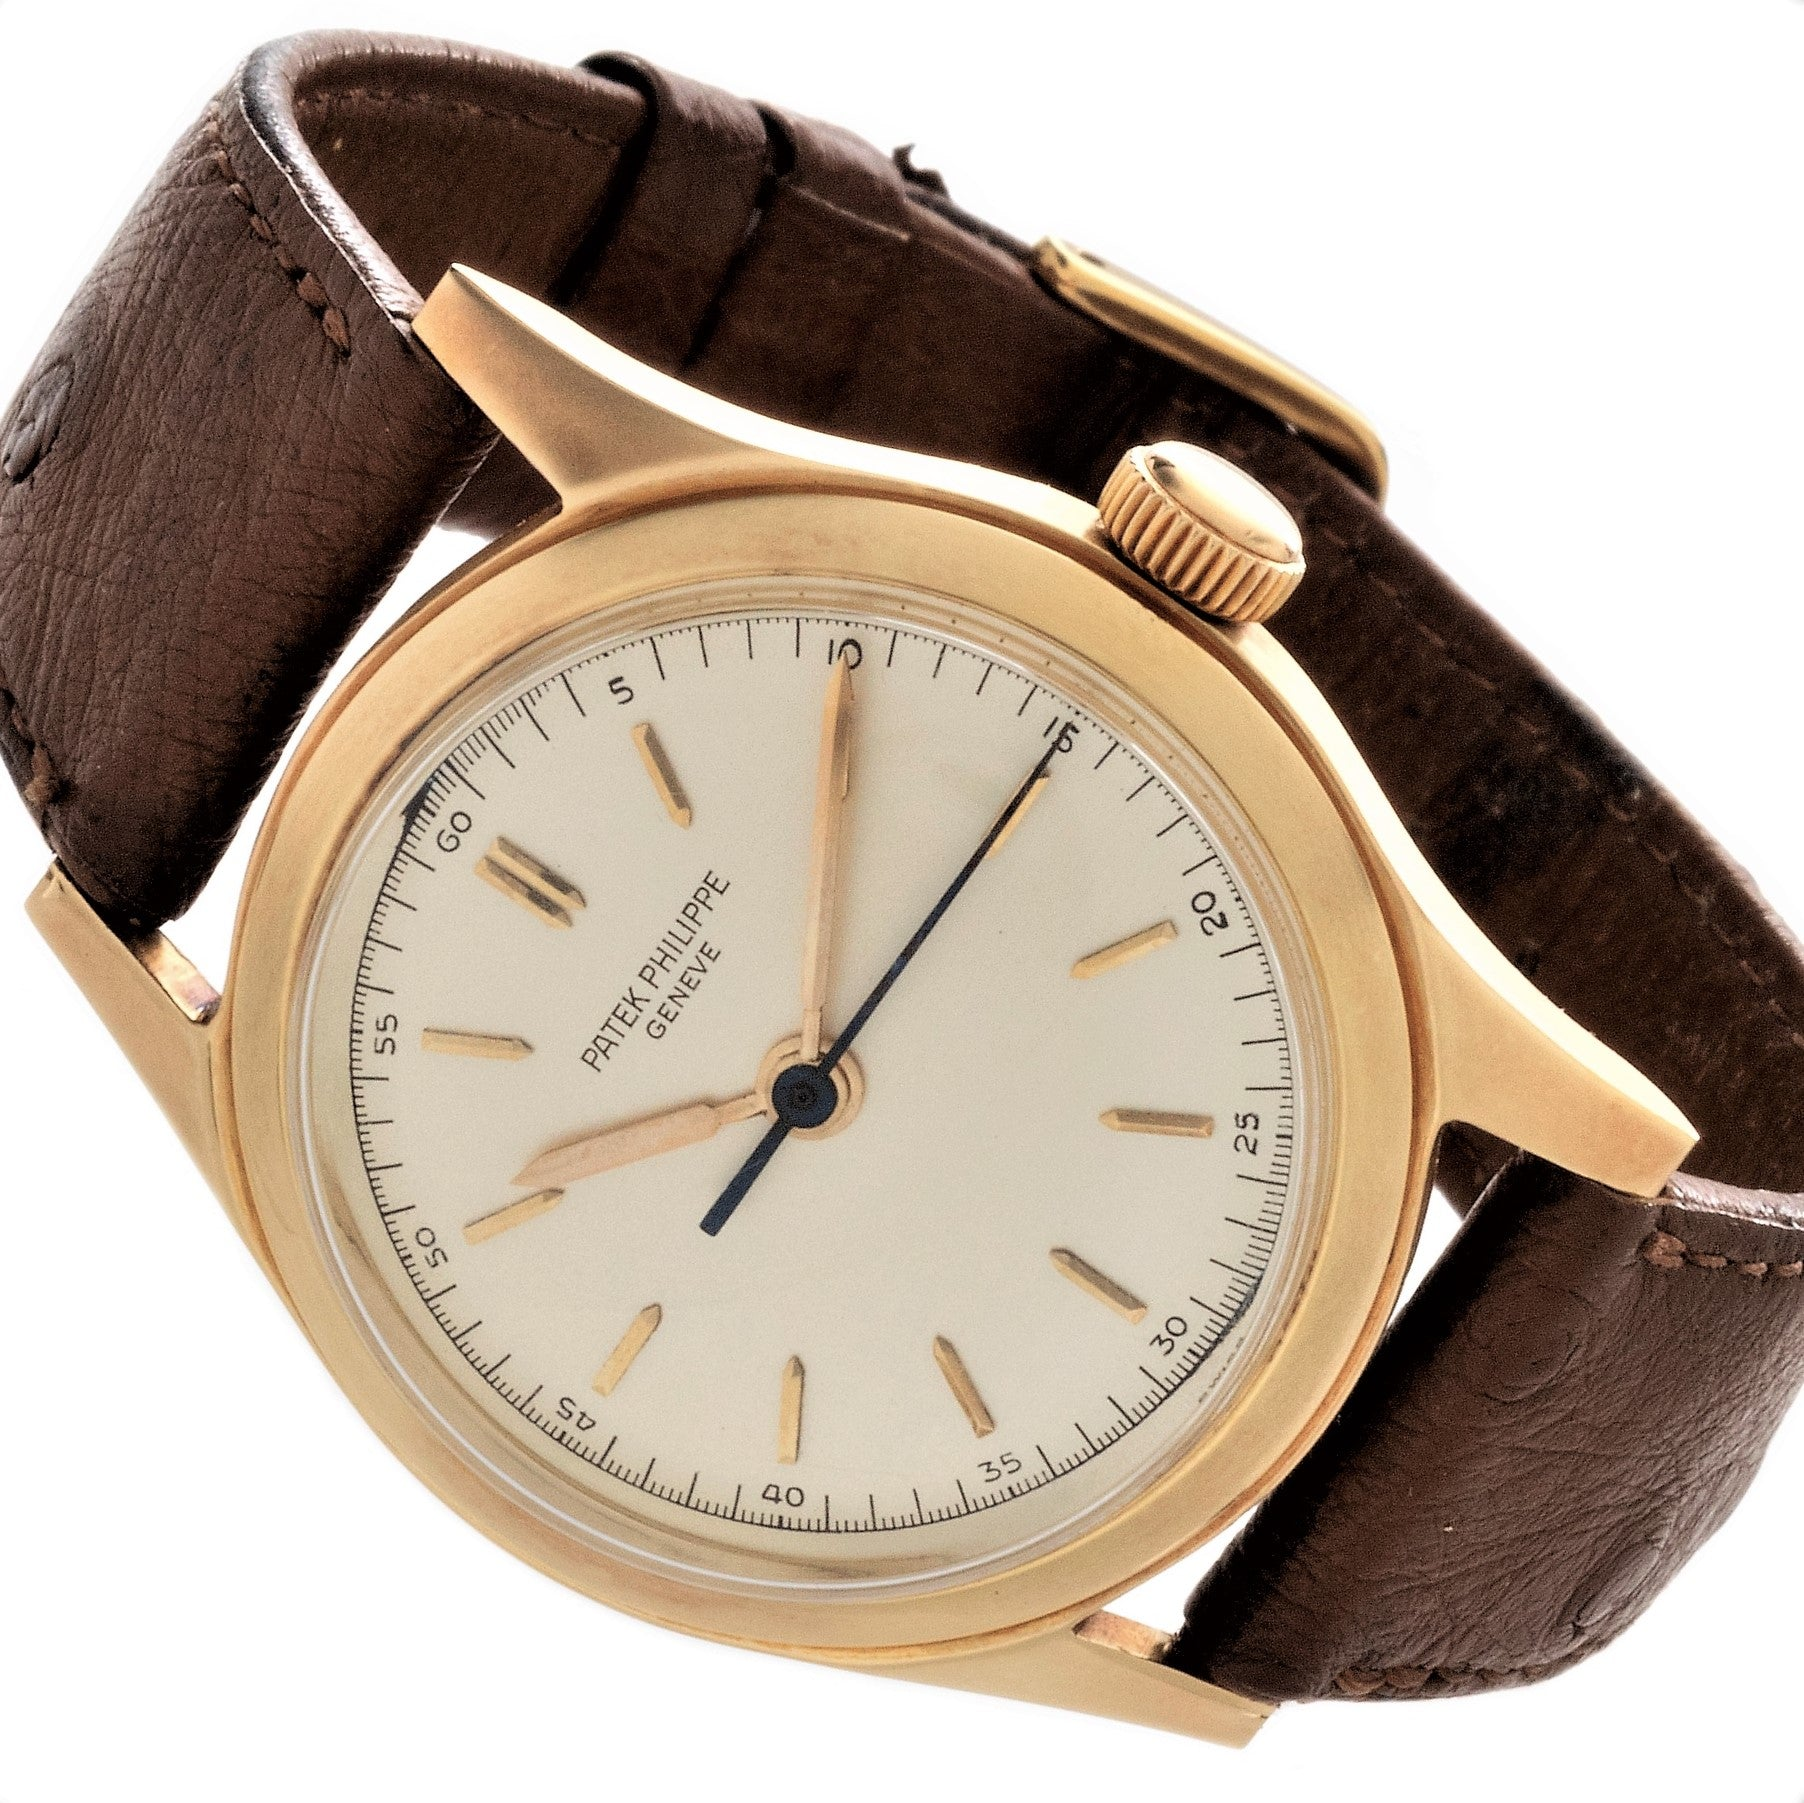 Patek Philippe 2483J Calatrava Watch